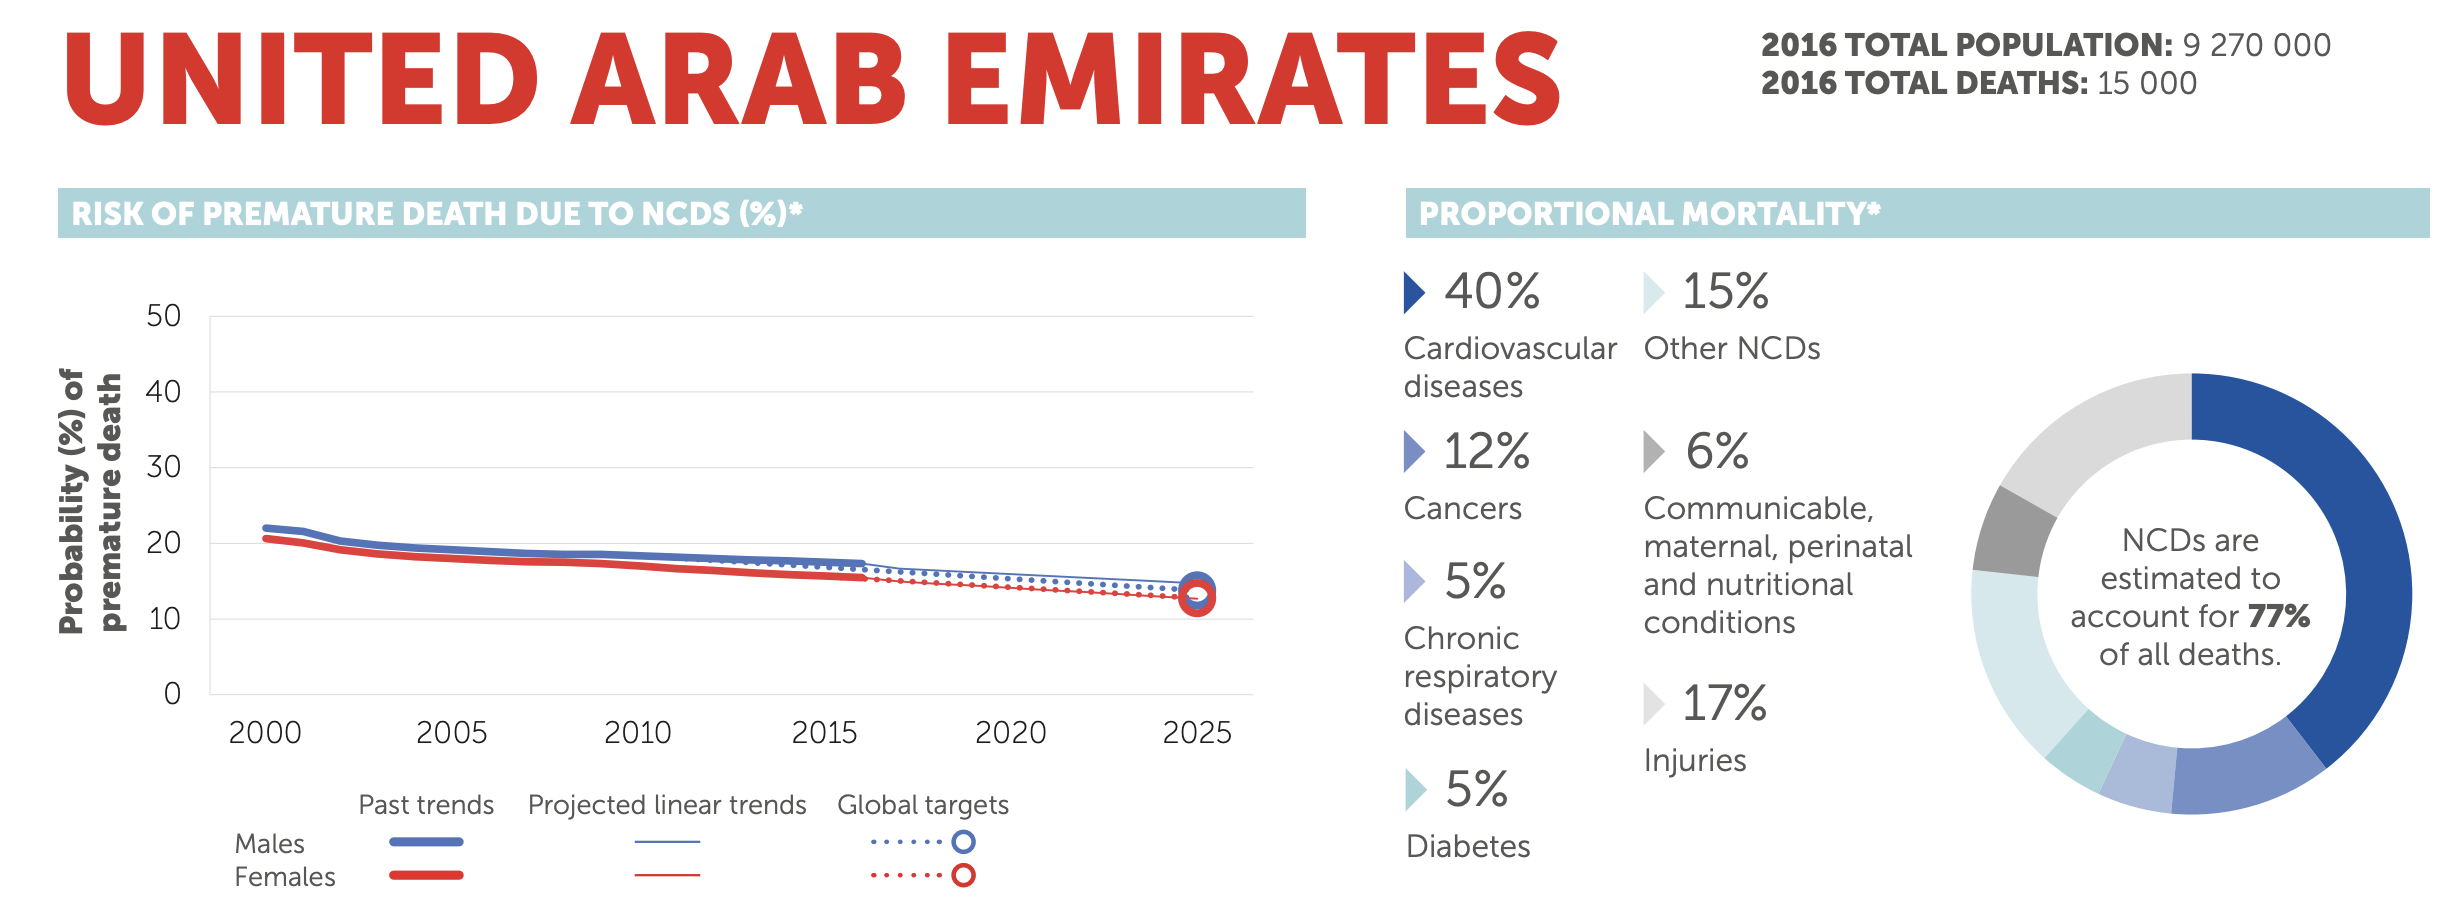 NCDs account for 77% of all deaths in UAE